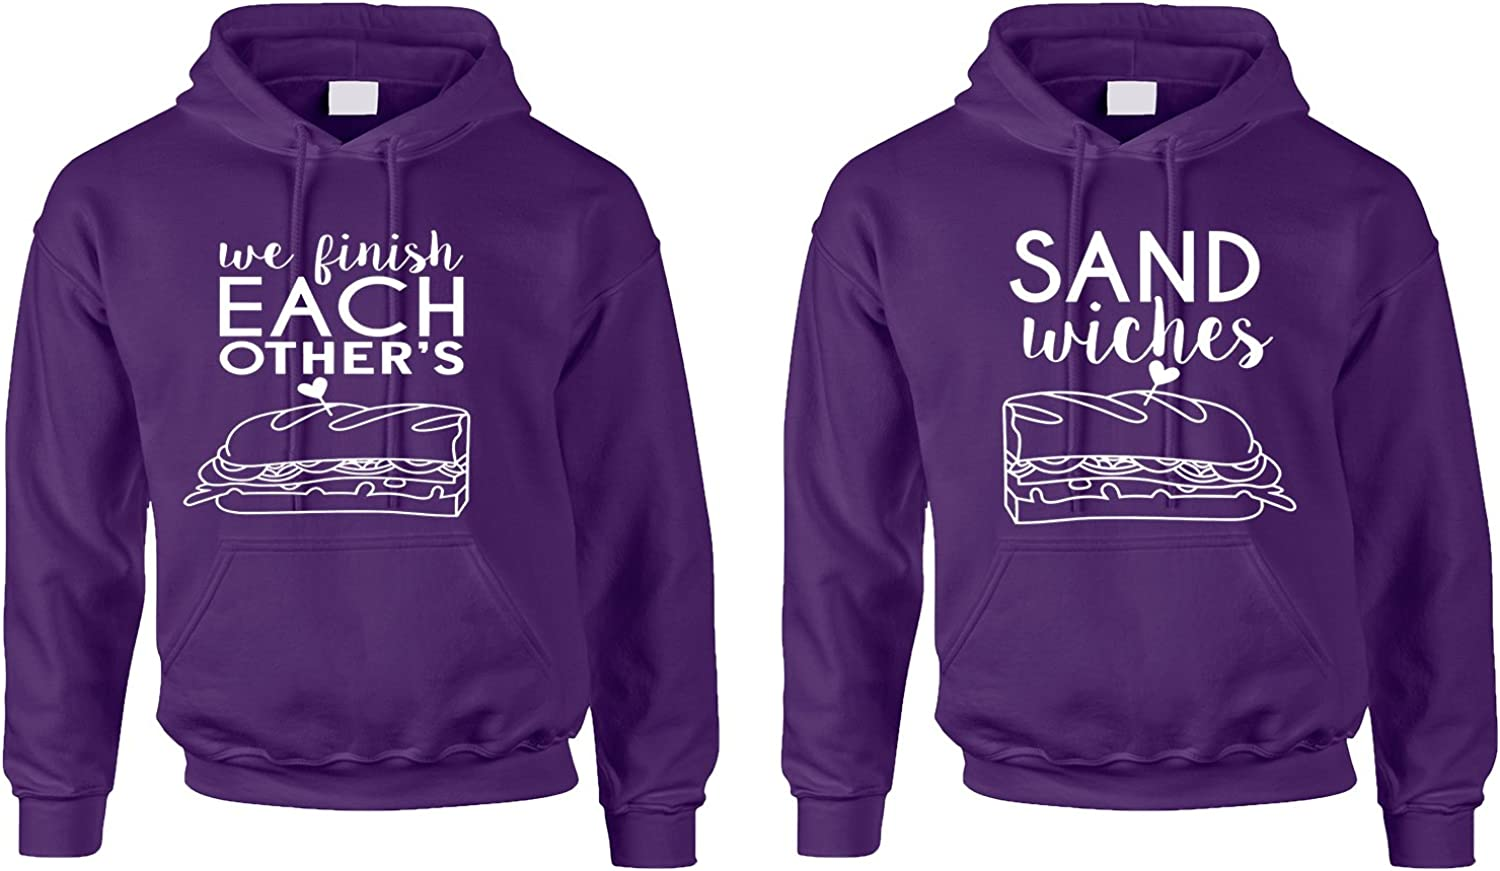 Allntrends Couple Hoodies We Finish Each Other's Sandwiches Valentine's Day